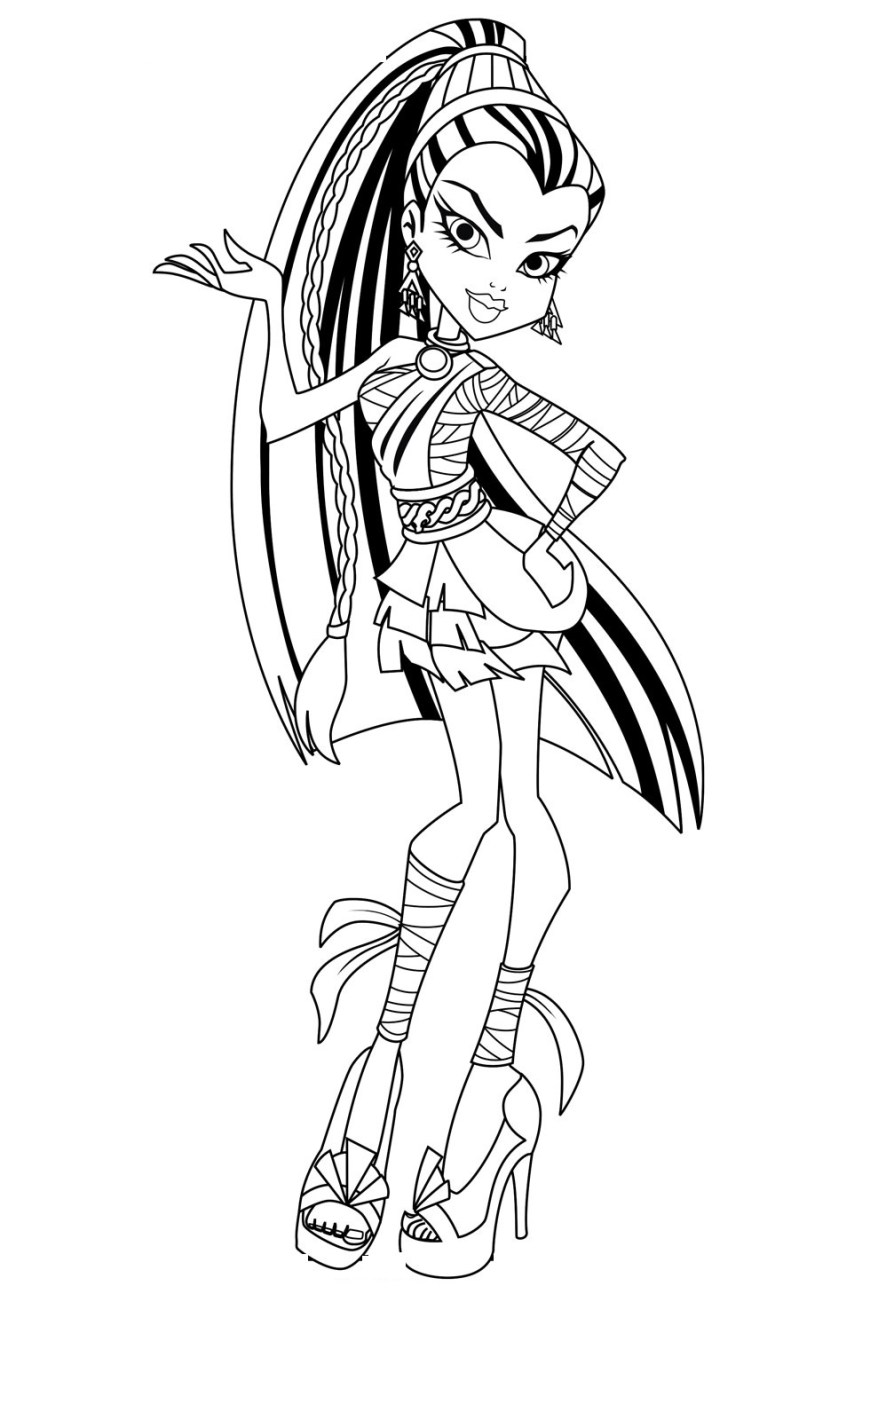 Monster High Coloring Pages Printable Coloring Page Monster High Coloring Book Pages Remarkable Inside